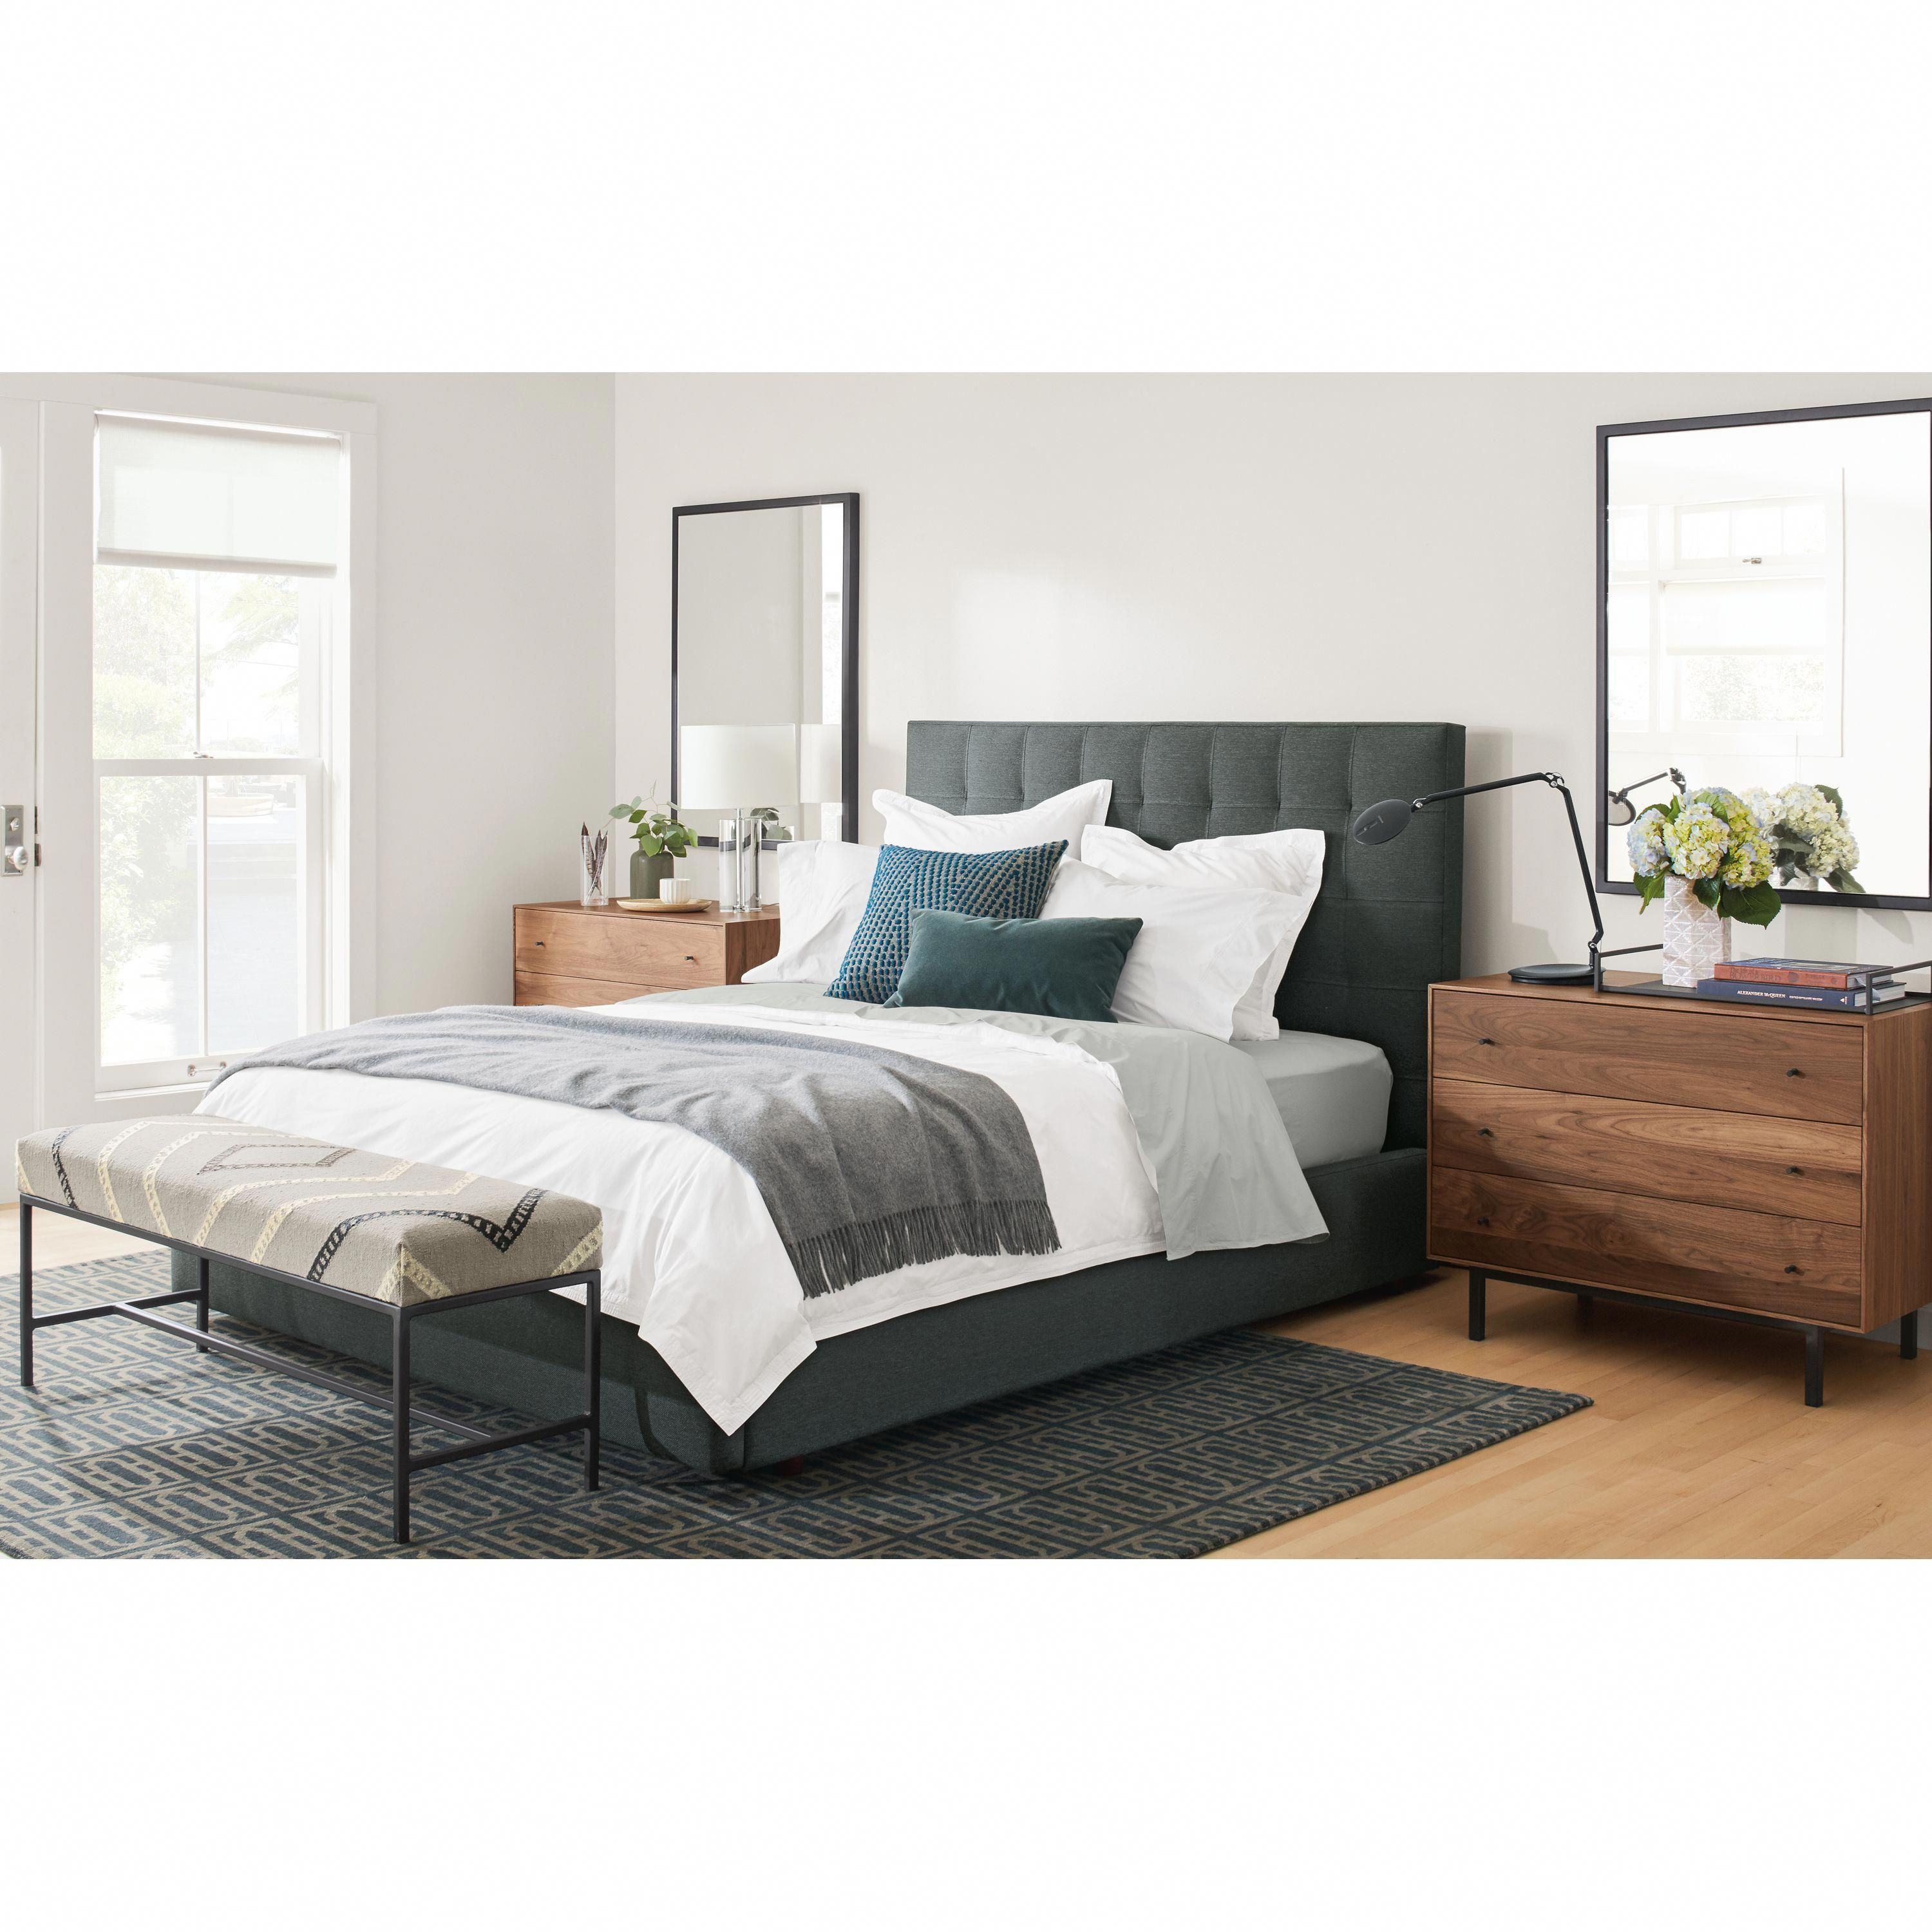 Avery Upholstered Bed - Modern & Contemporary Beds ...